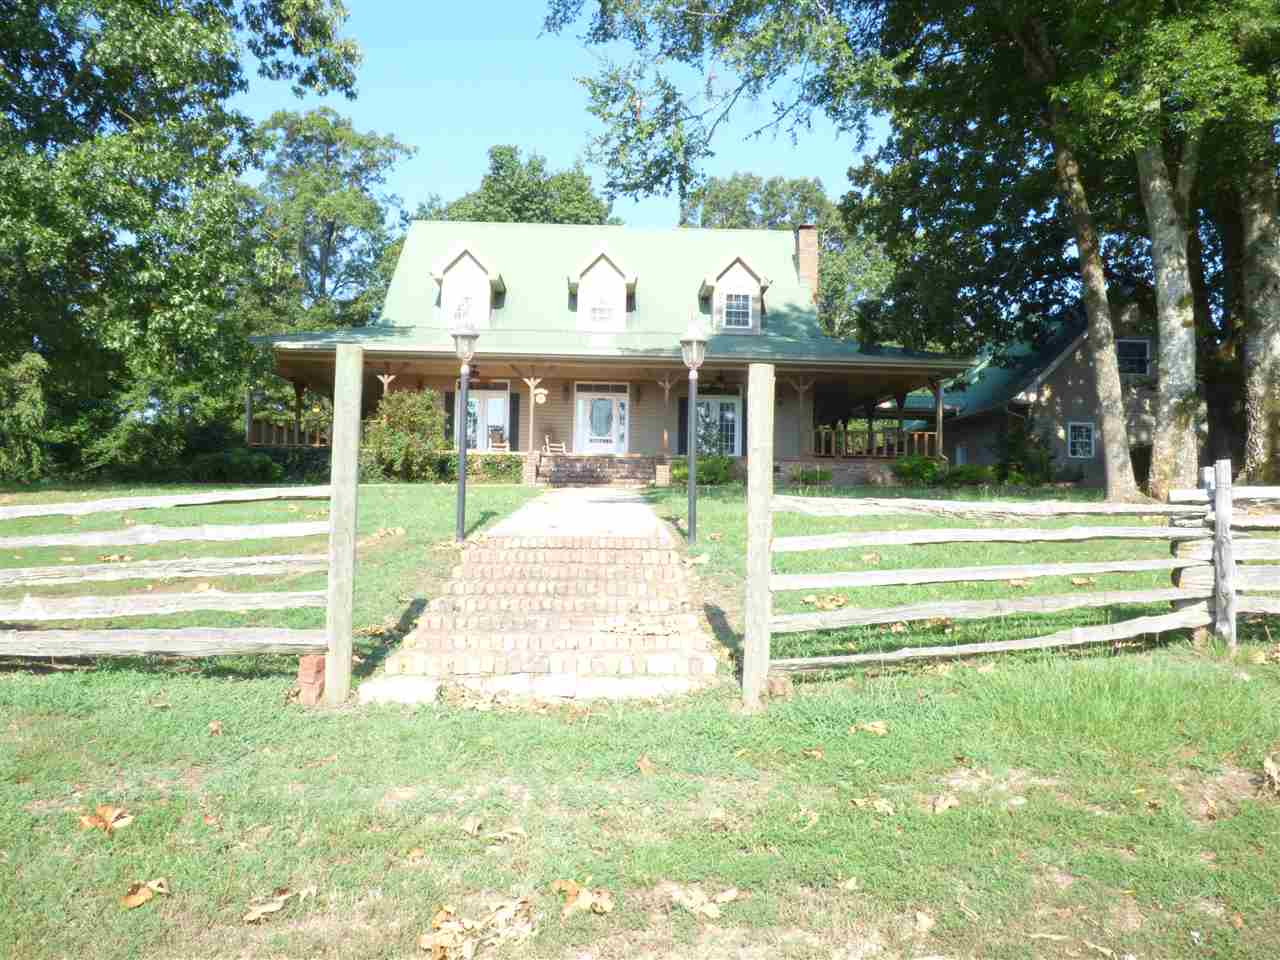 bonnerdale dating Find information about 118 pearcy rd, bonnerdale, ar 71933 on eracom view photos, get a property value estimate and more.